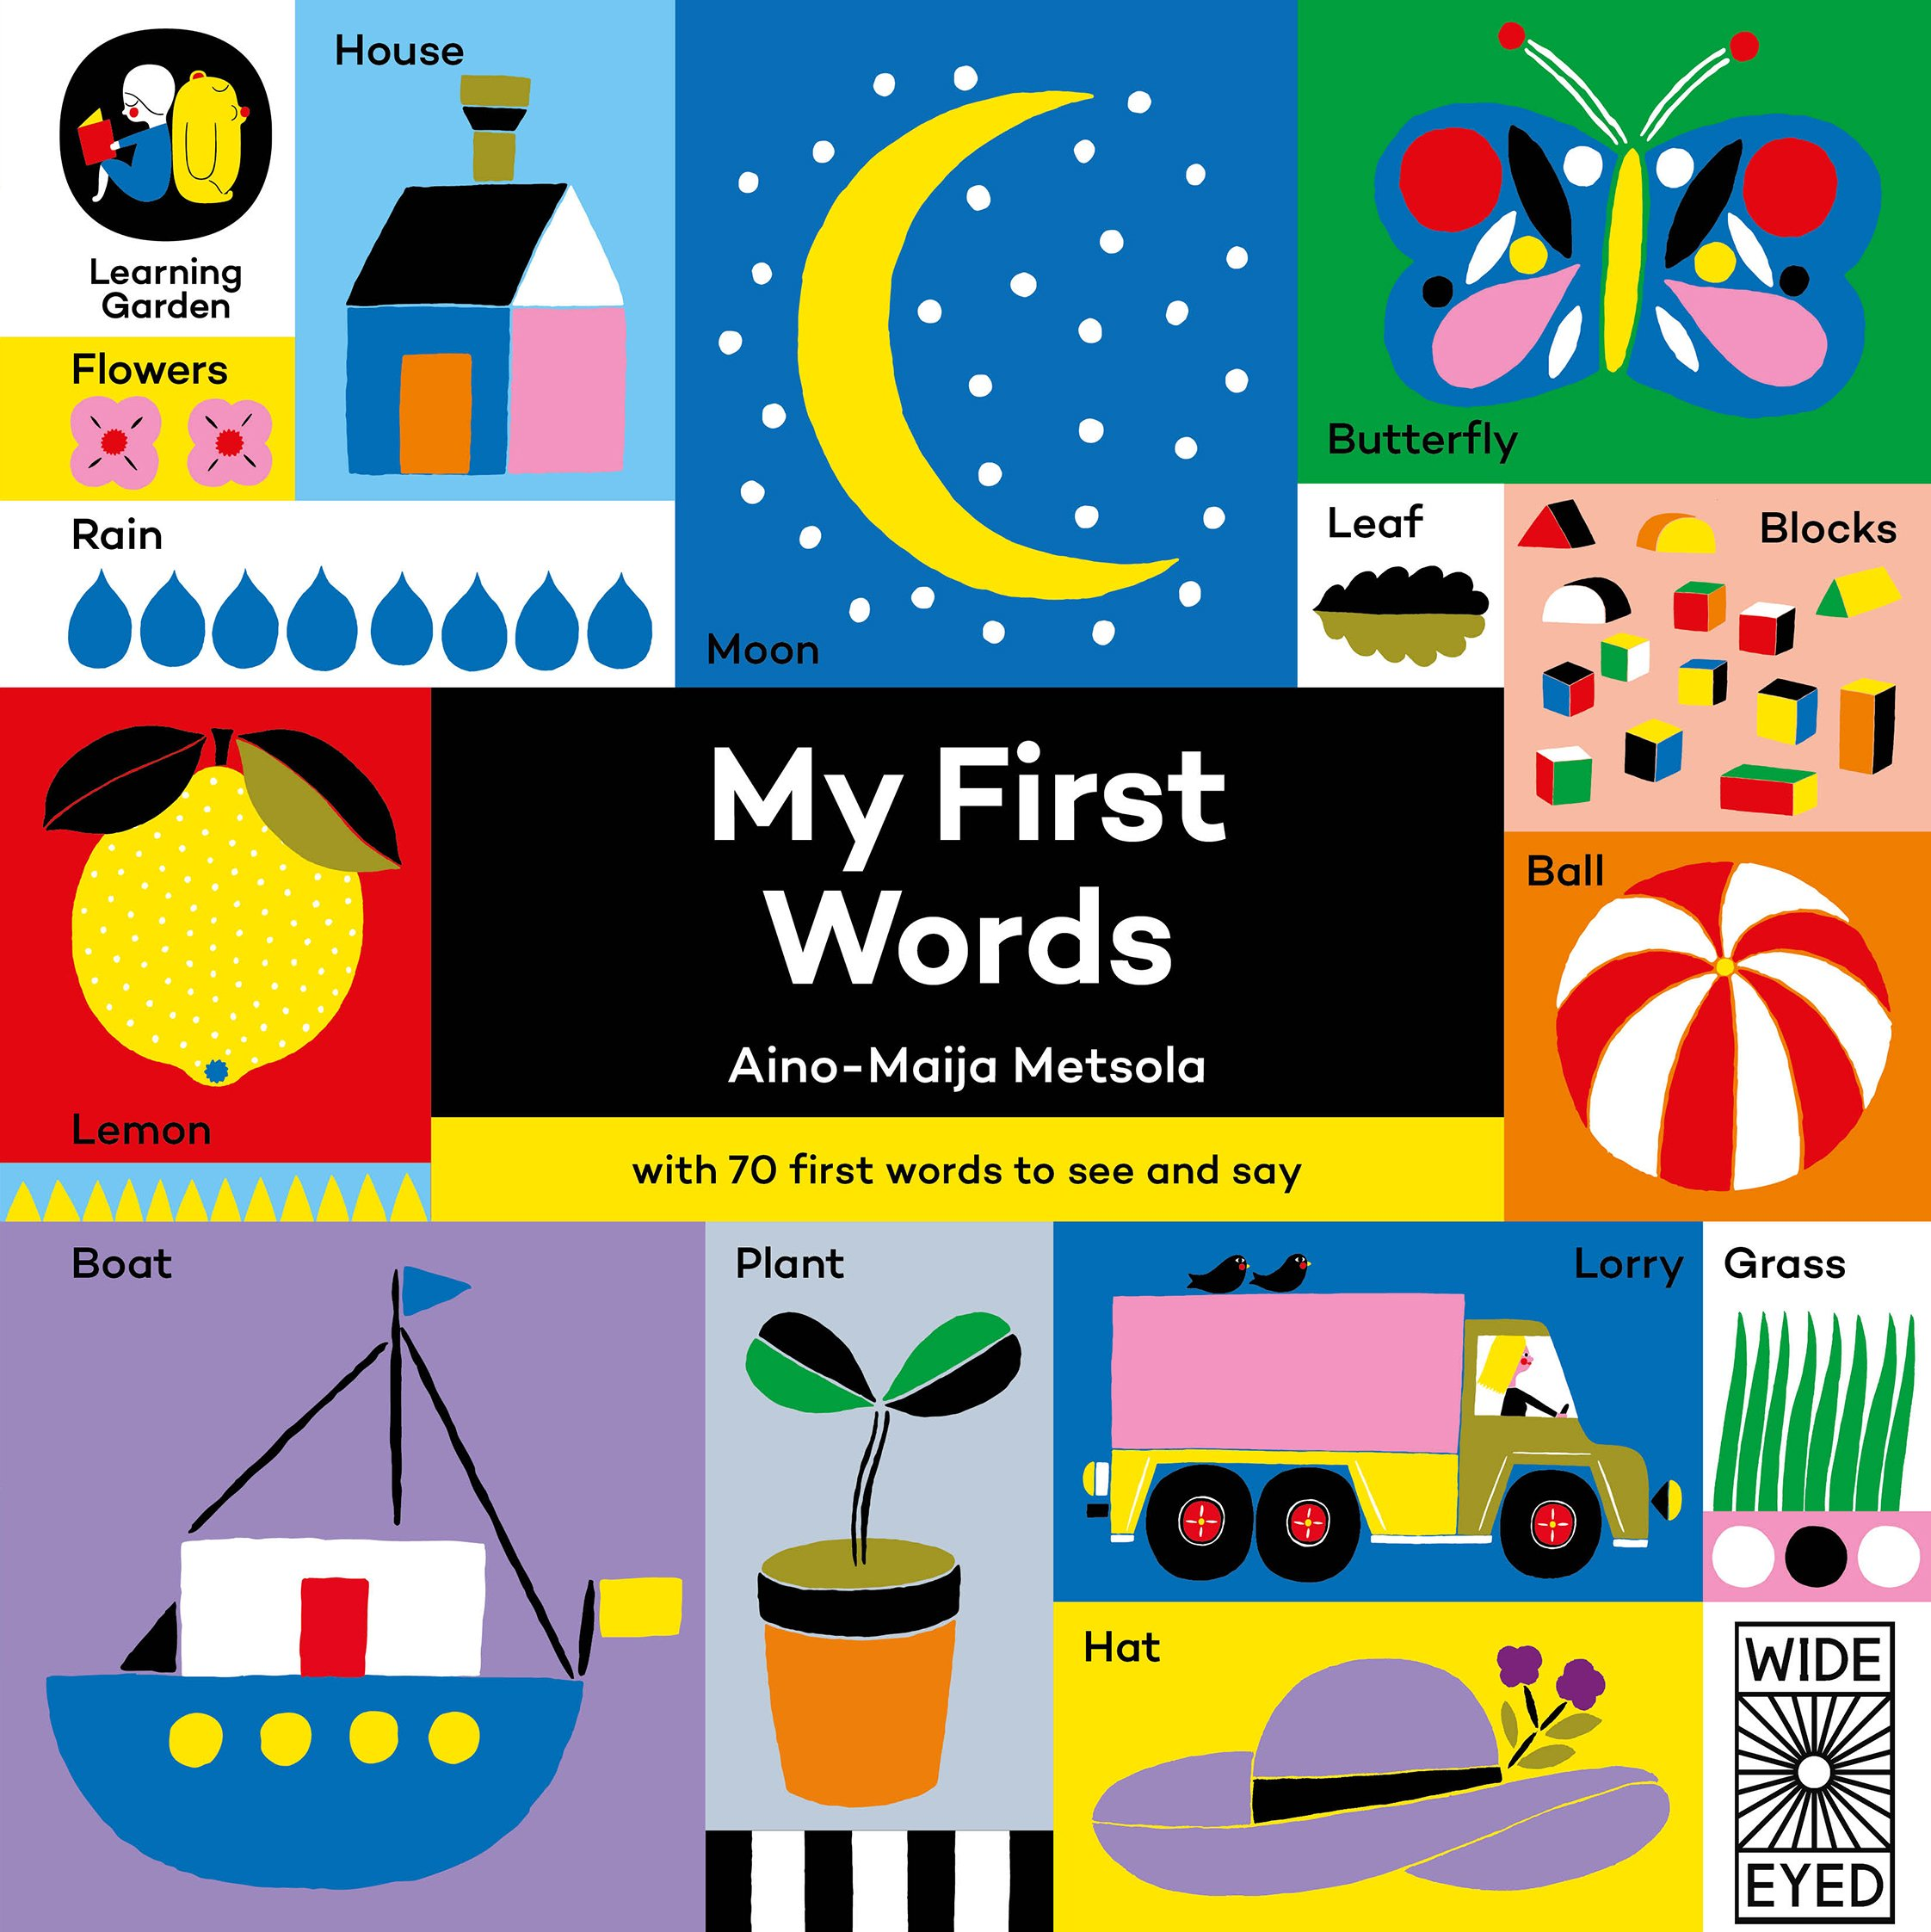 my first words the learning garden - The Learning Garden